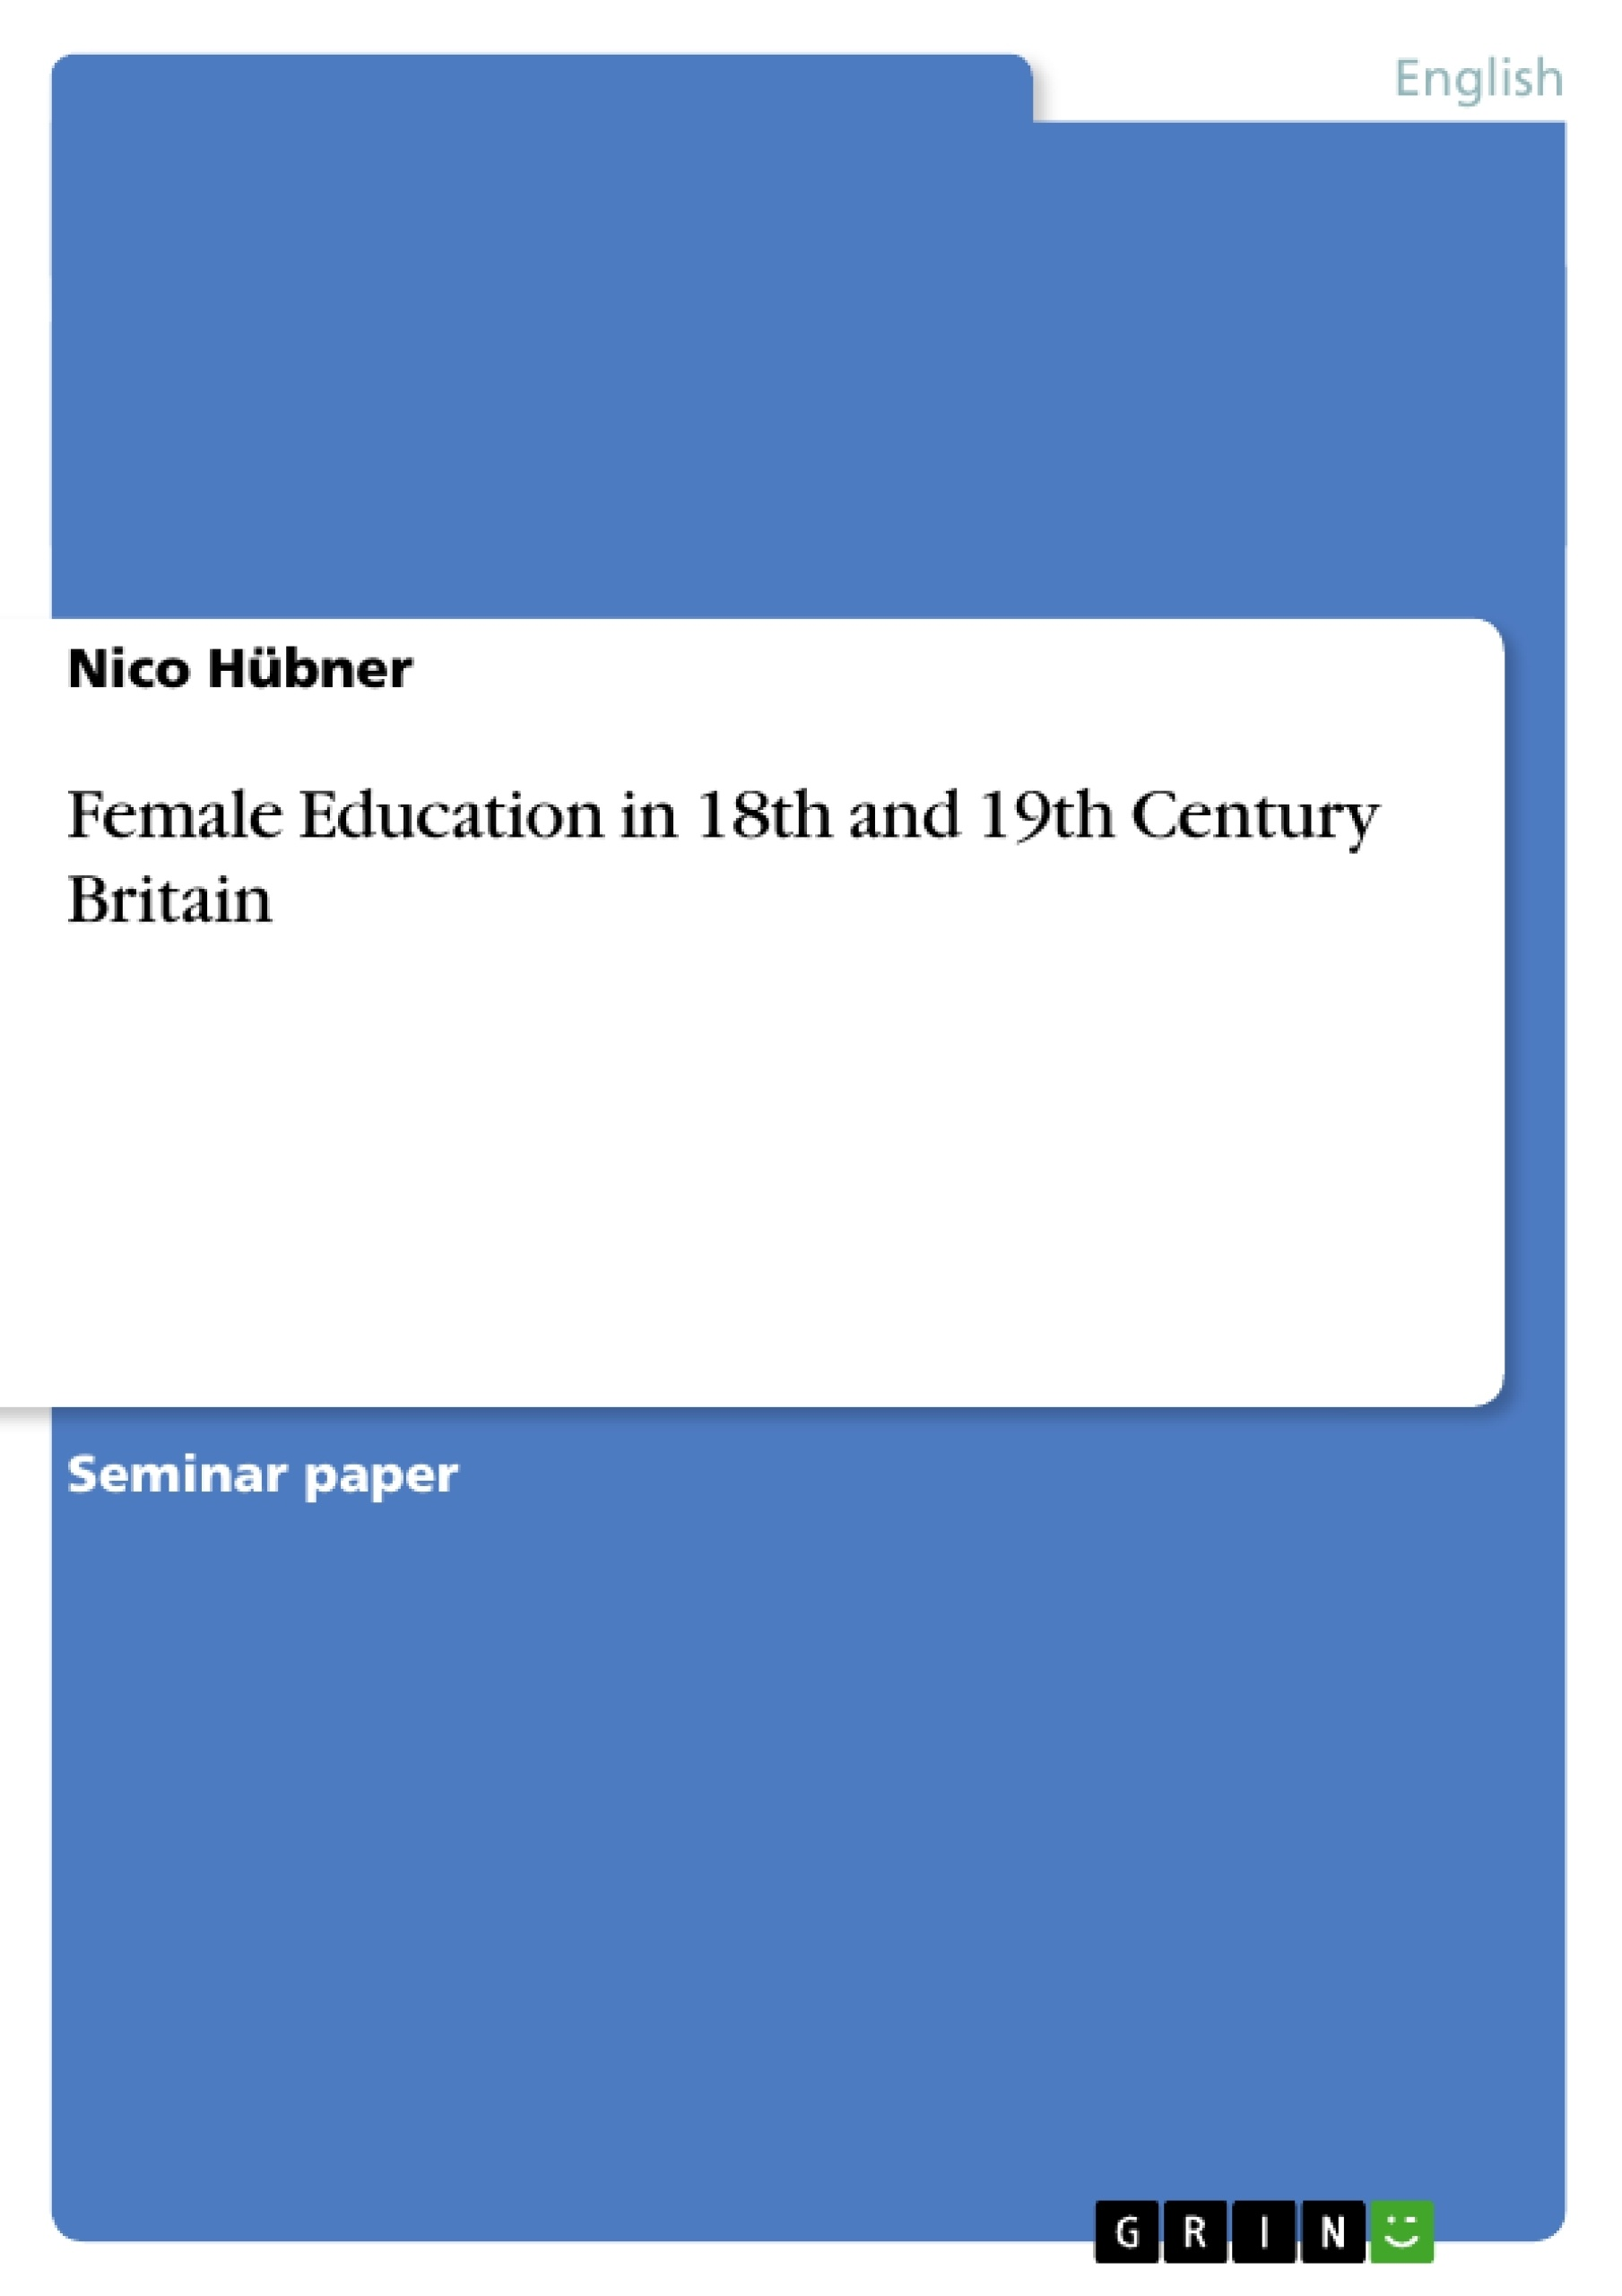 female education in th and th century britain publish your female education in 18th and 19th century britain publish your master s thesis bachelor s thesis essay or term paper